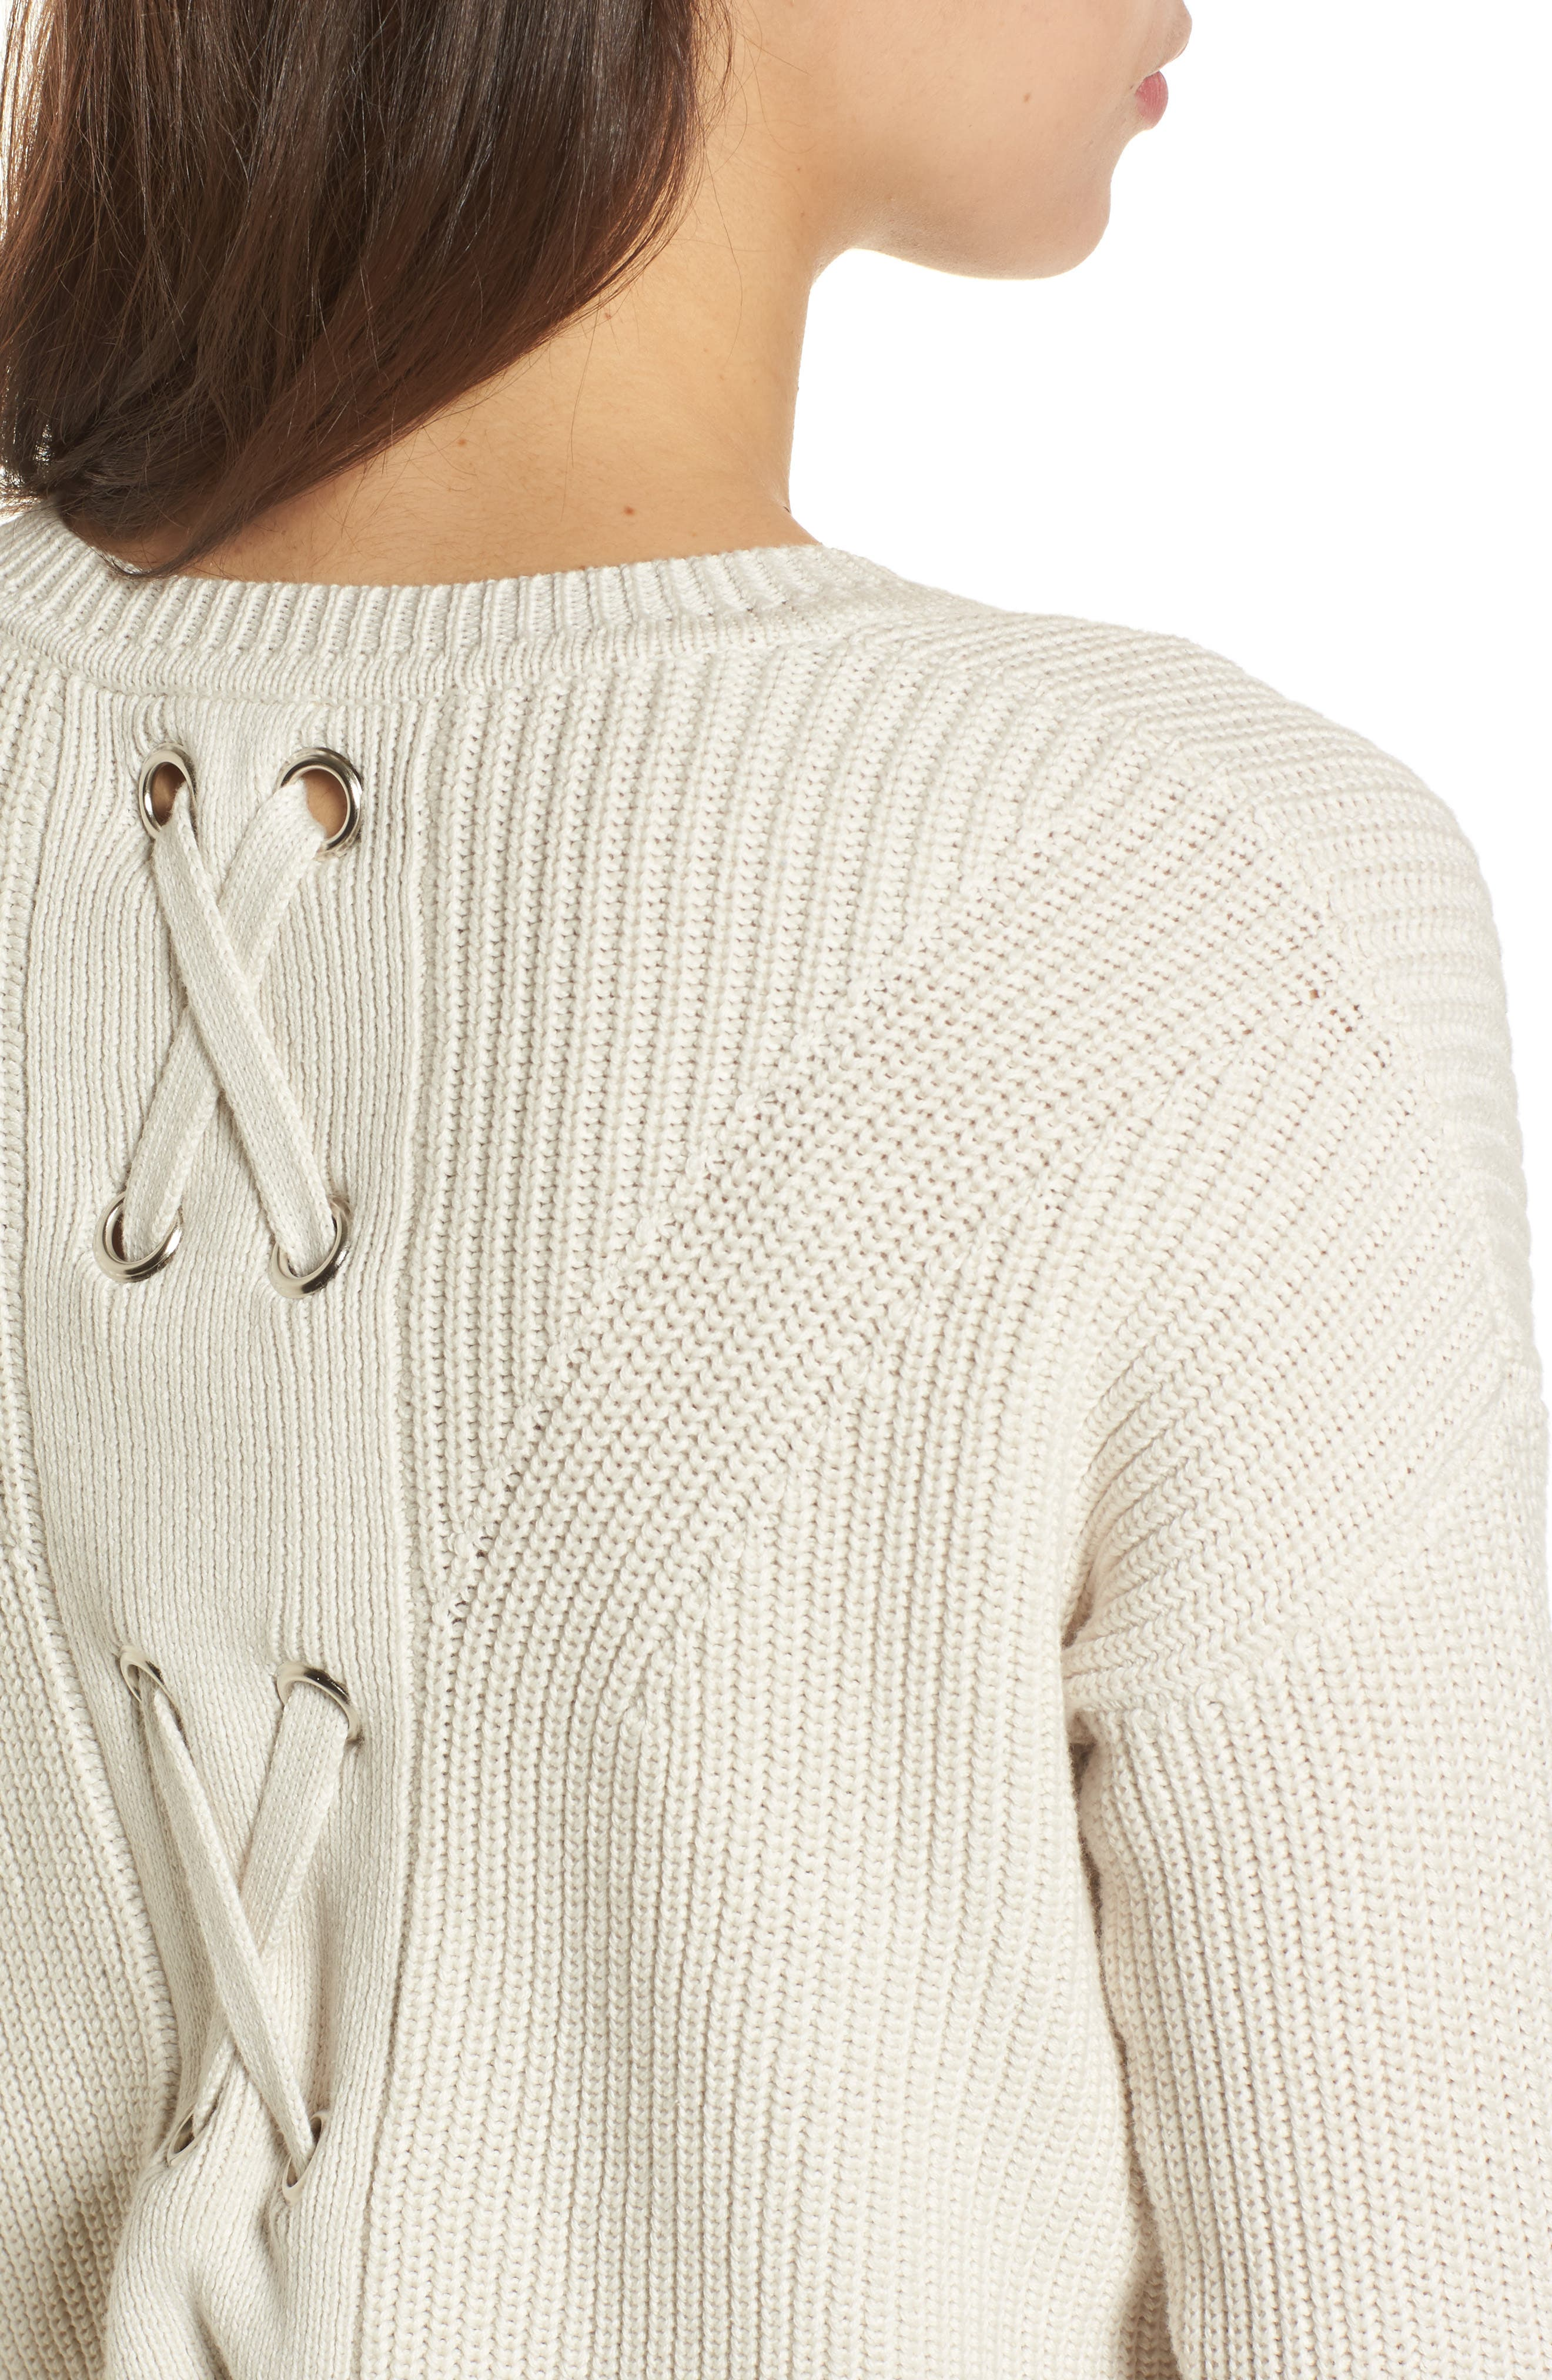 Lace-Up Back Sweater,                             Alternate thumbnail 4, color,                             250